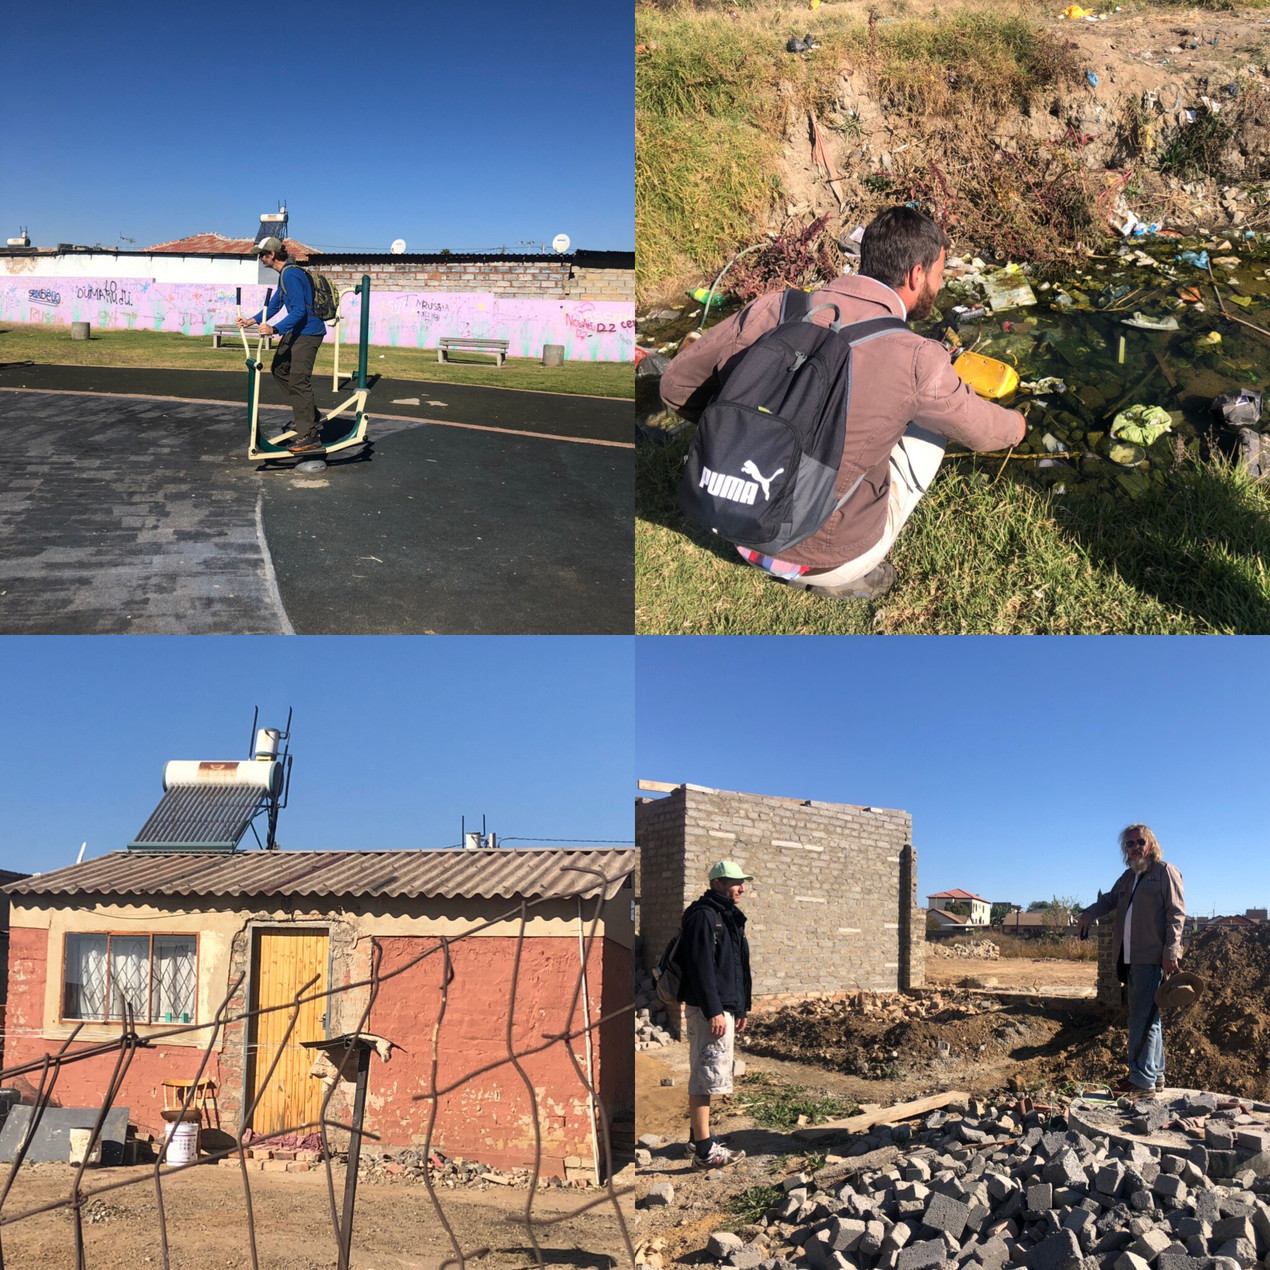 Illegal dumping and development destroying Kaalfontein Wetland and the beginning of a 100km Hennops River hike